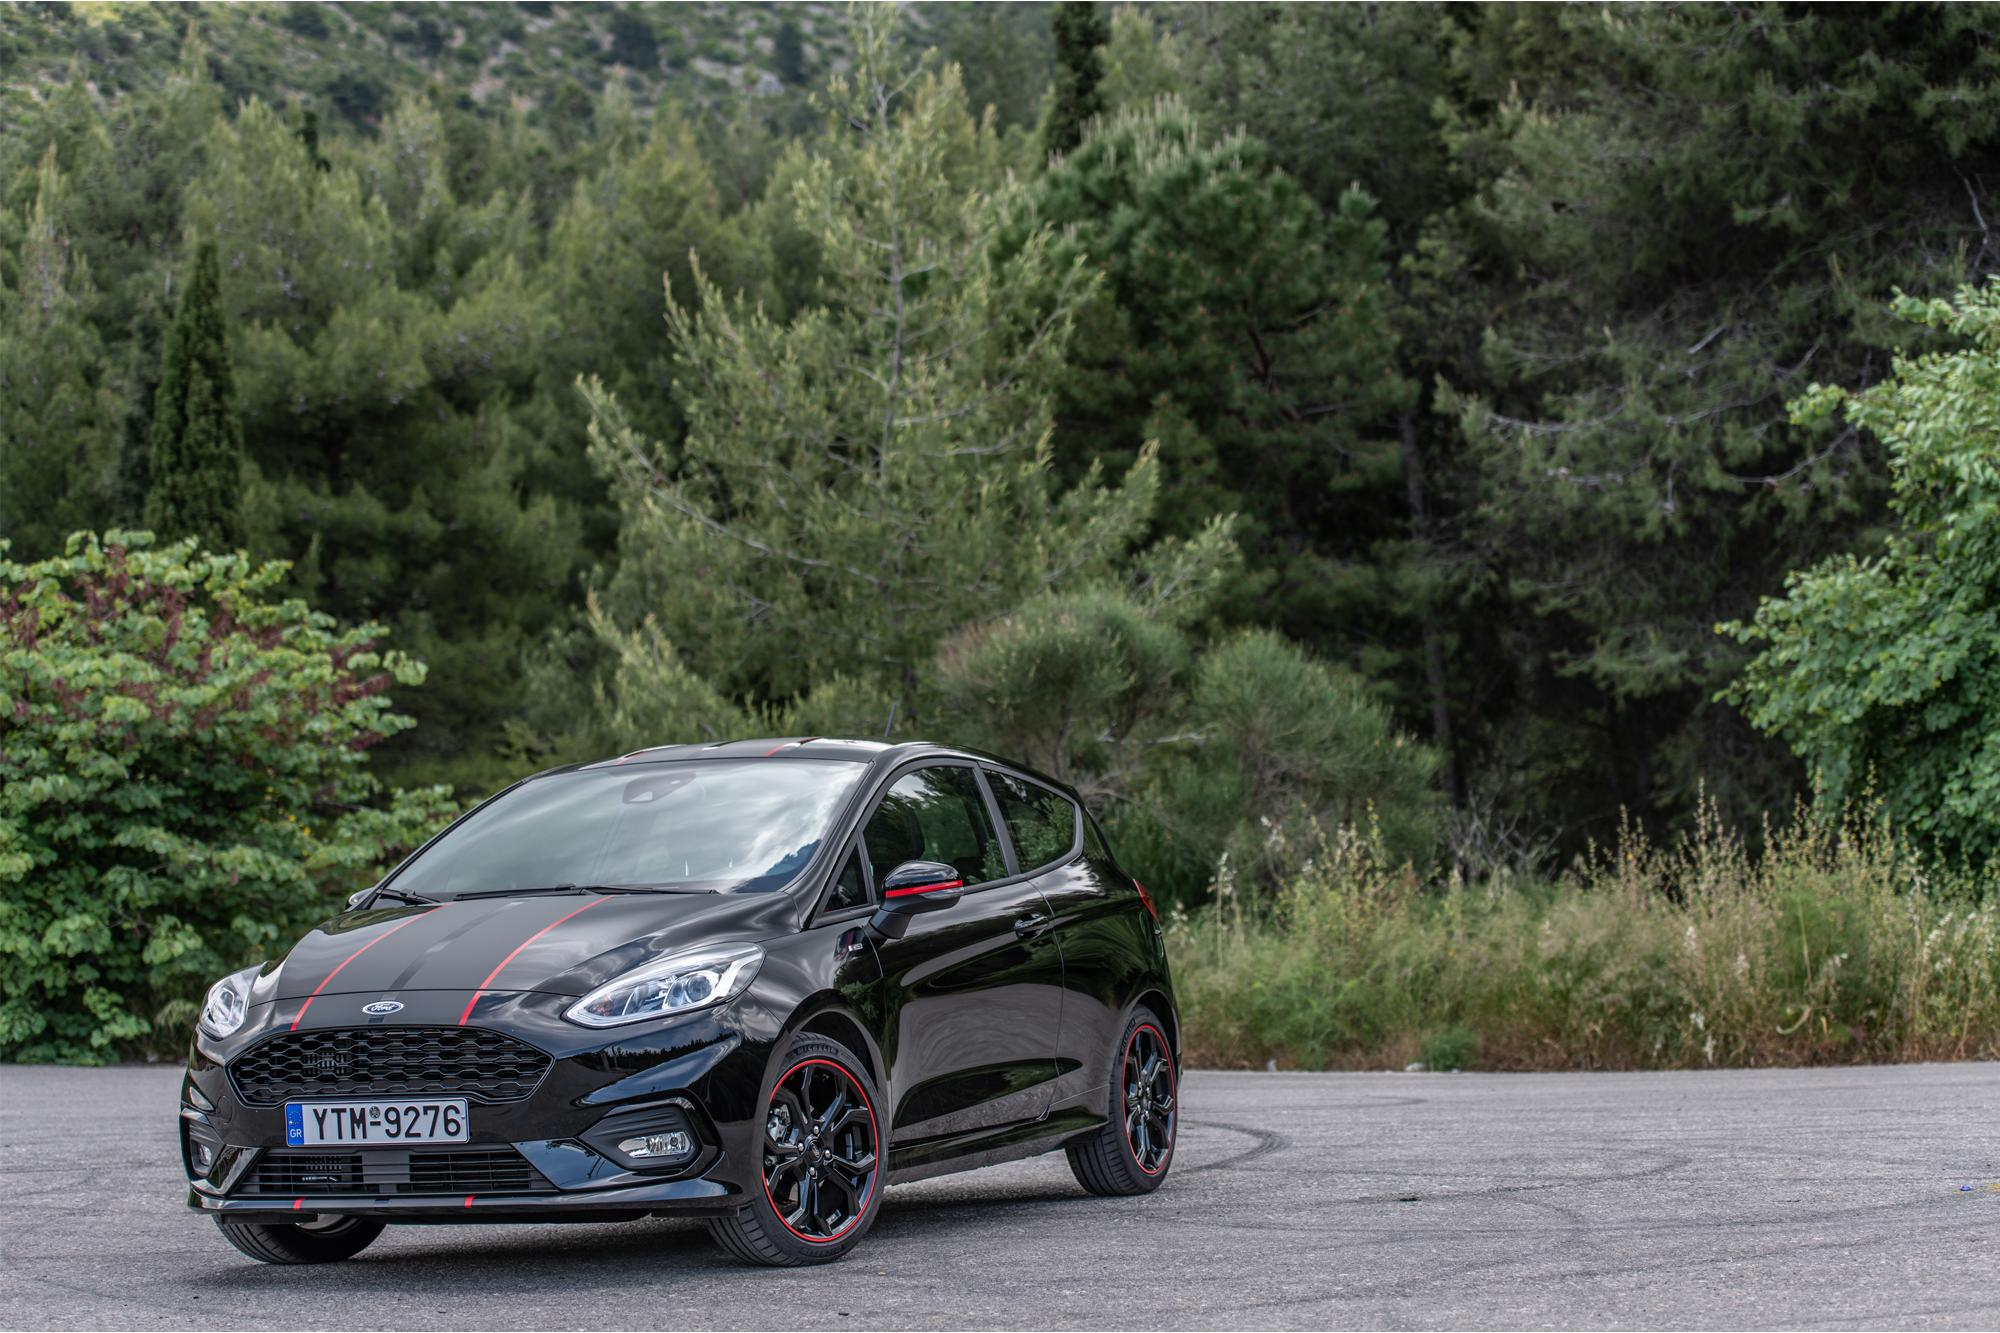 Ford Fiesta ST-Line Black Edition 1.0EcoBoost 140PS